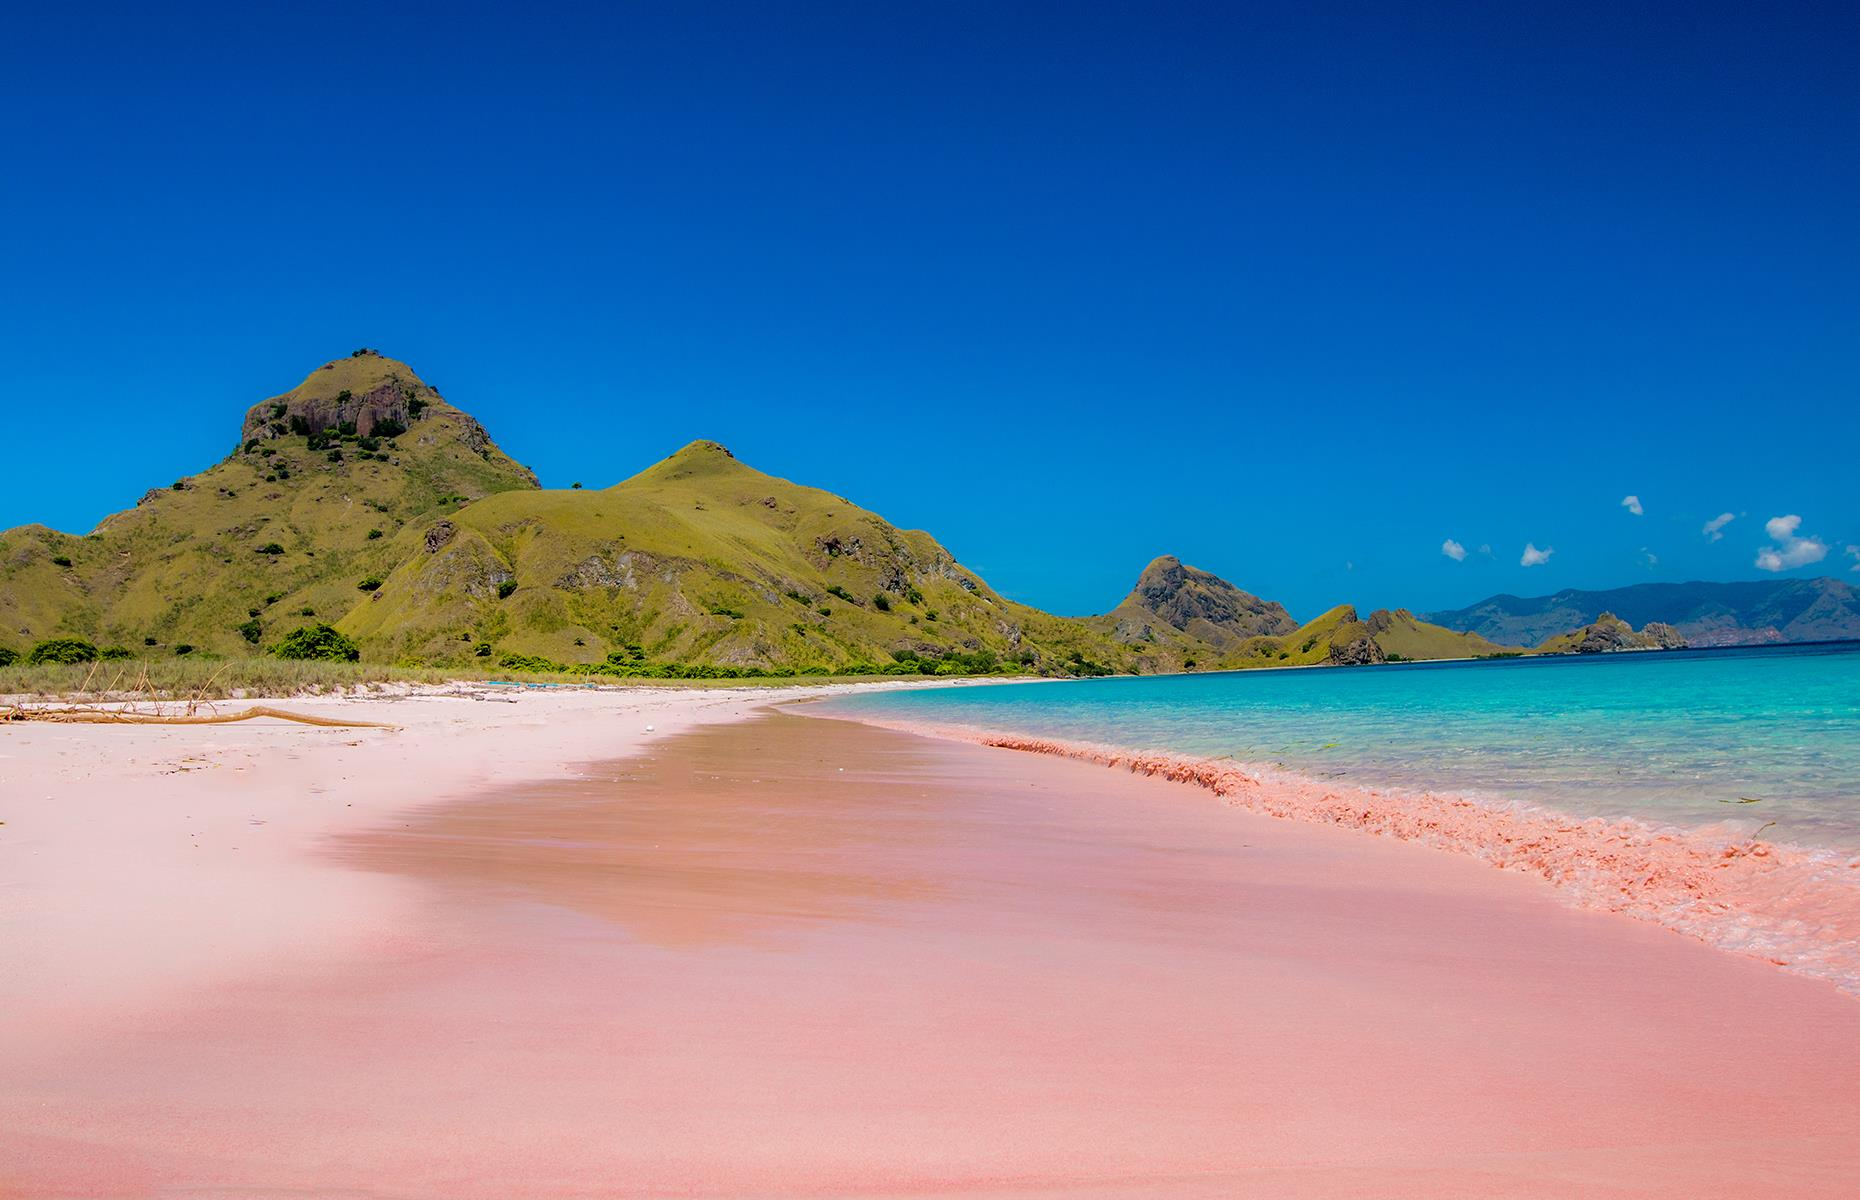 Slide 34 of 43: There are thought to be just a handful of pink beaches in the world and one of the most famous (and most spectacular) can be found on Komodo Island in Indonesia. The beach's pastel hue is created when the red shells of tiny creatures called foraminifera combine with white sand. Sandwiched between crystalline waters and a rugged green landscape, this pink sand strip is almost too pretty to be real.